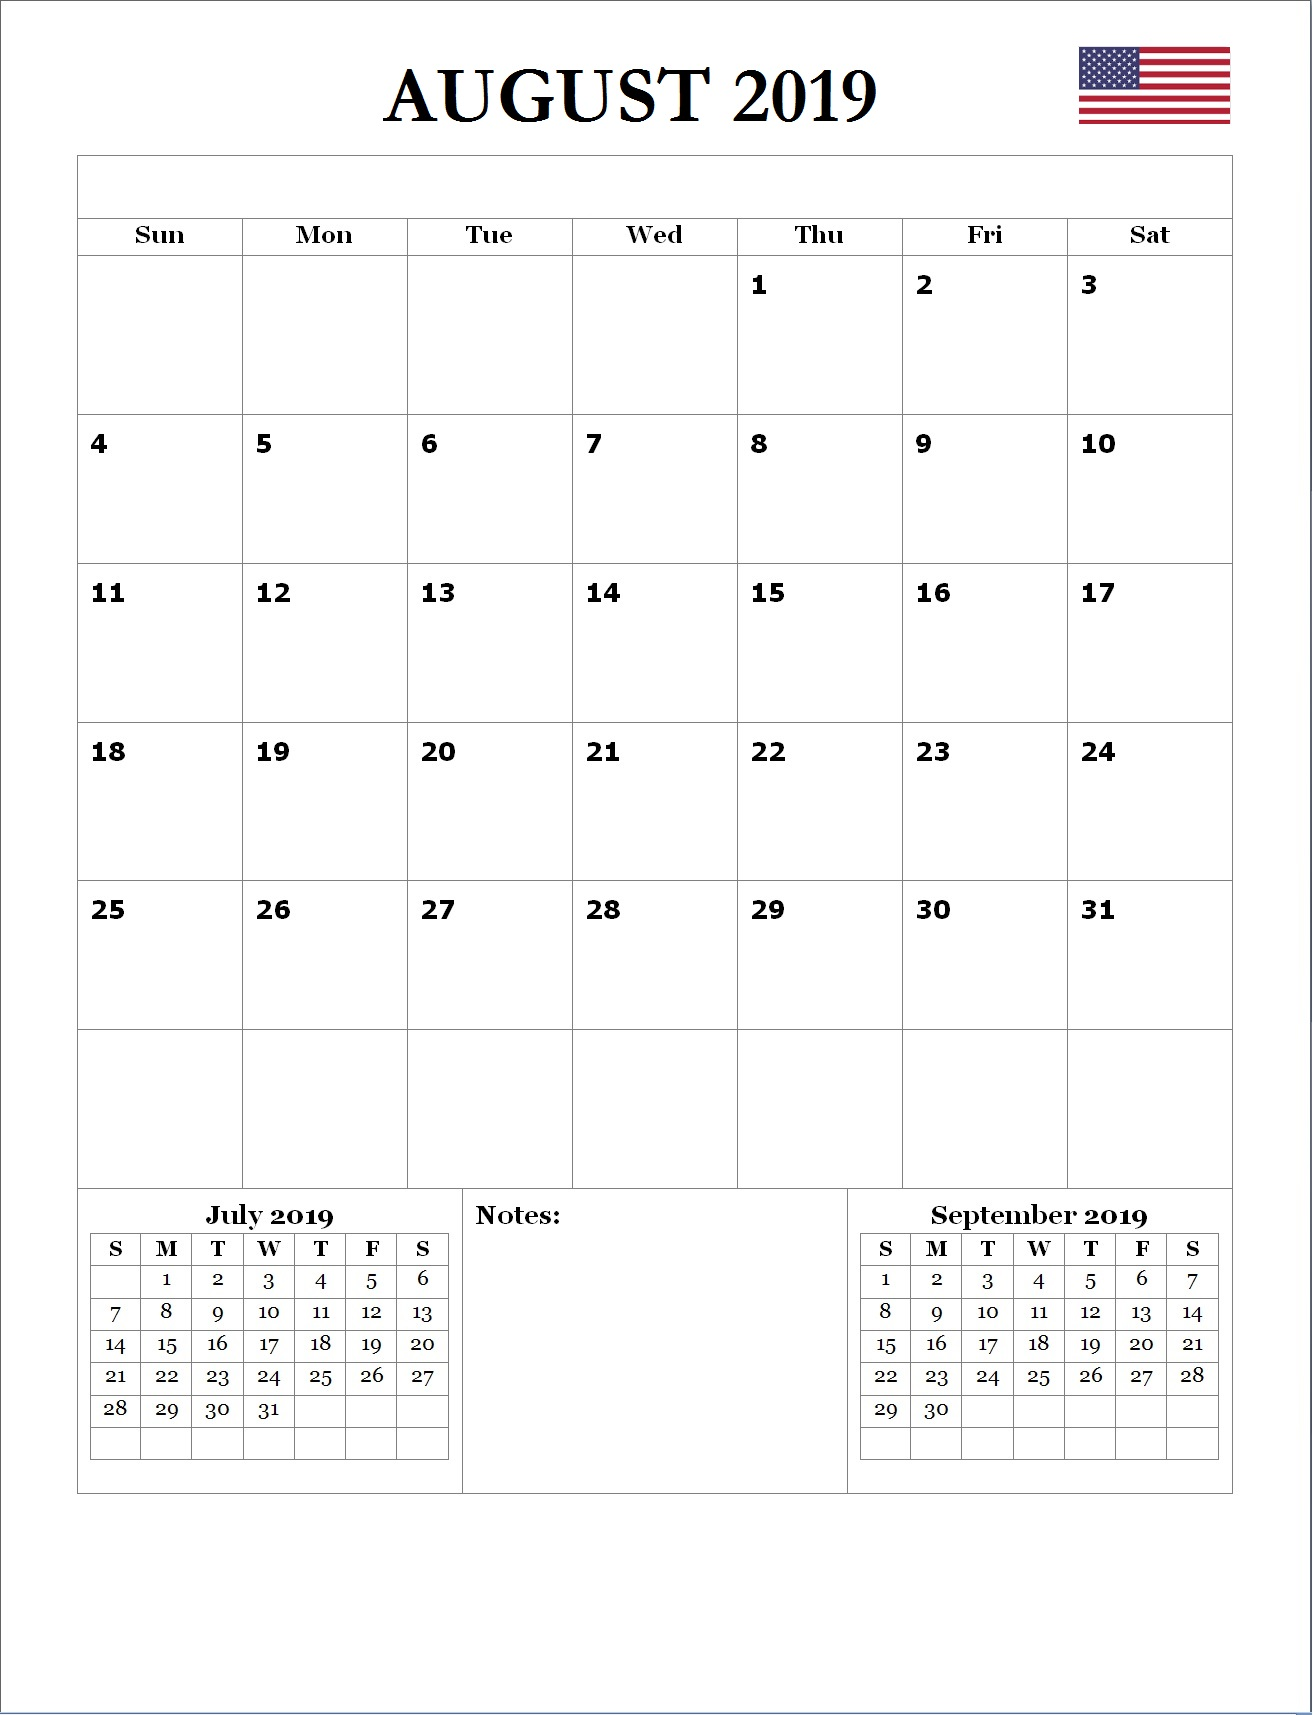 2019 August USA Holidays Calendar